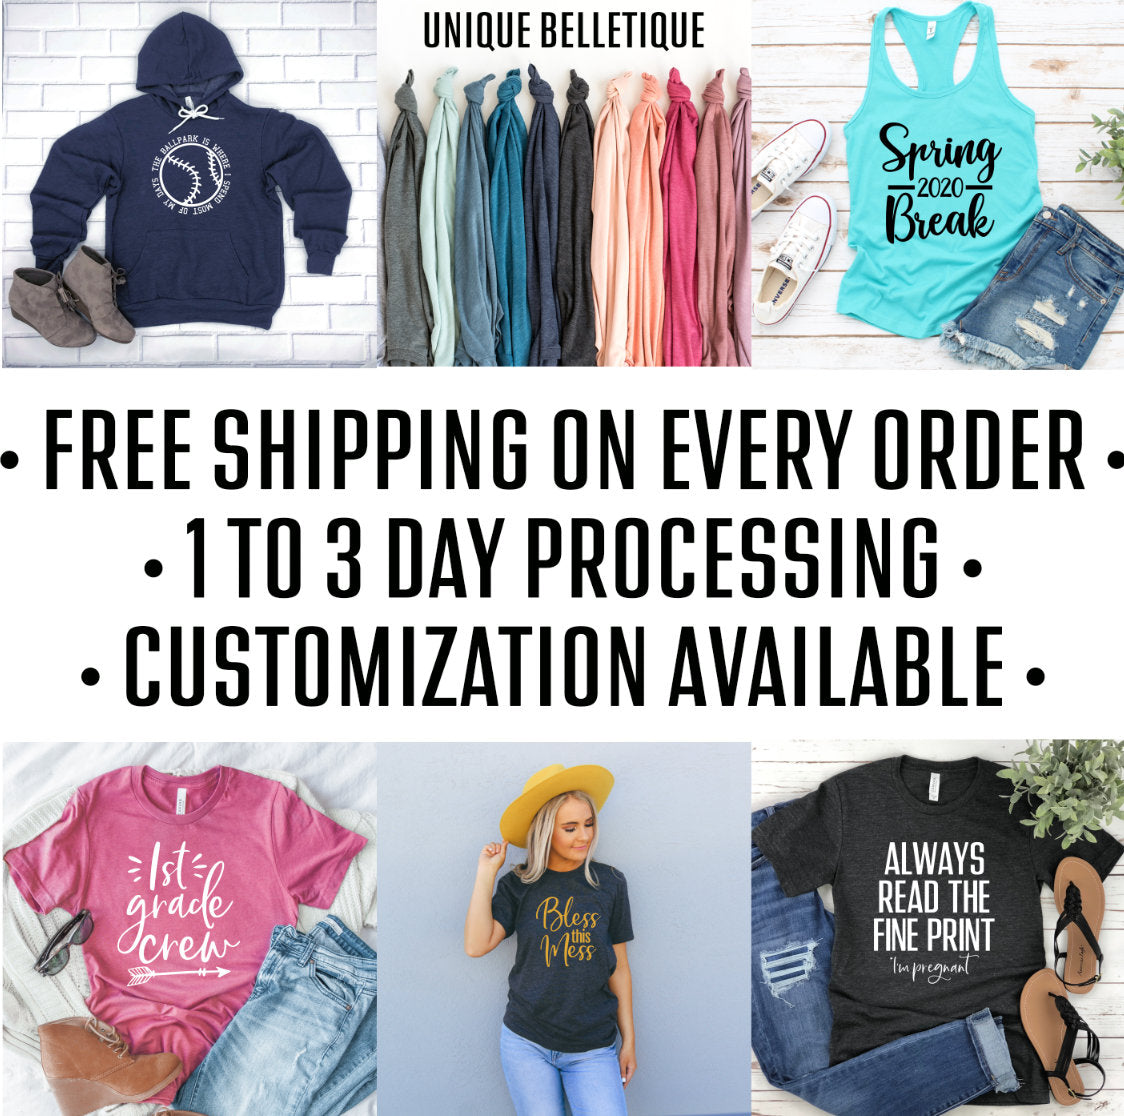 Customized Unisex Adult Crew Neck Sweatshirt - Custom Sweatshirt - Personalized Sweatshirt for Women